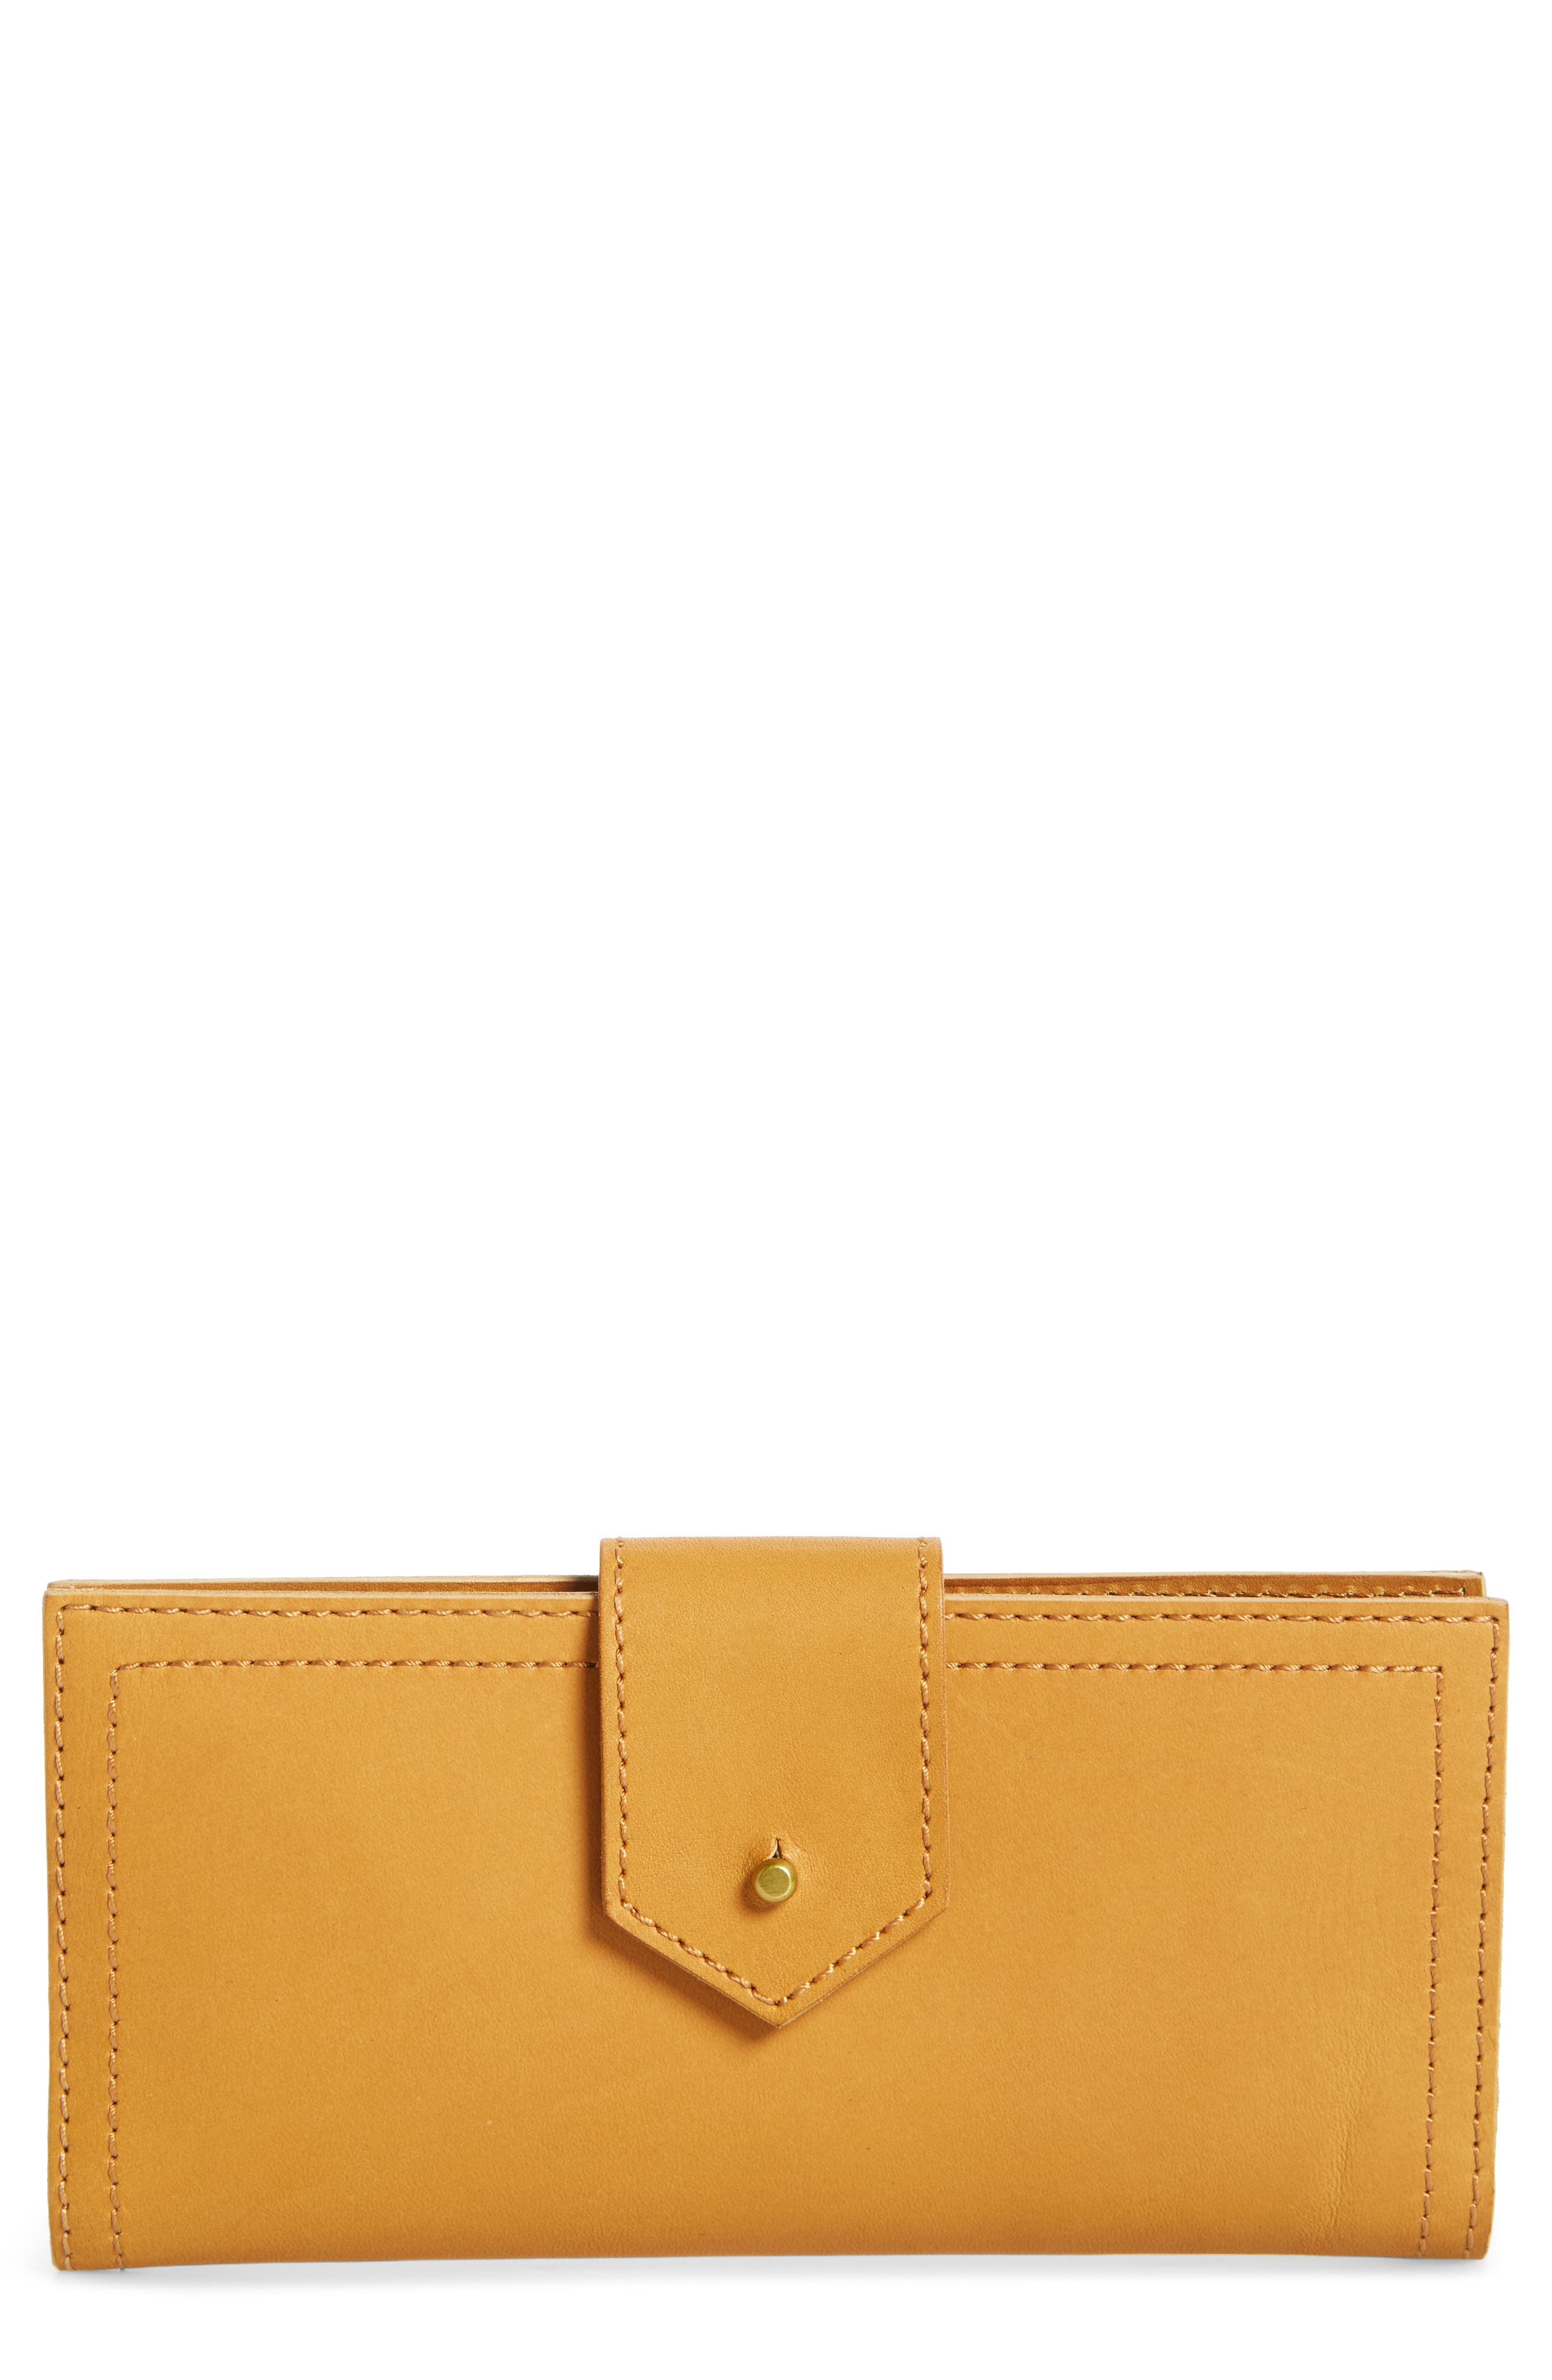 The Post Leather Wallet,                             Main thumbnail 1, color,                             Cider